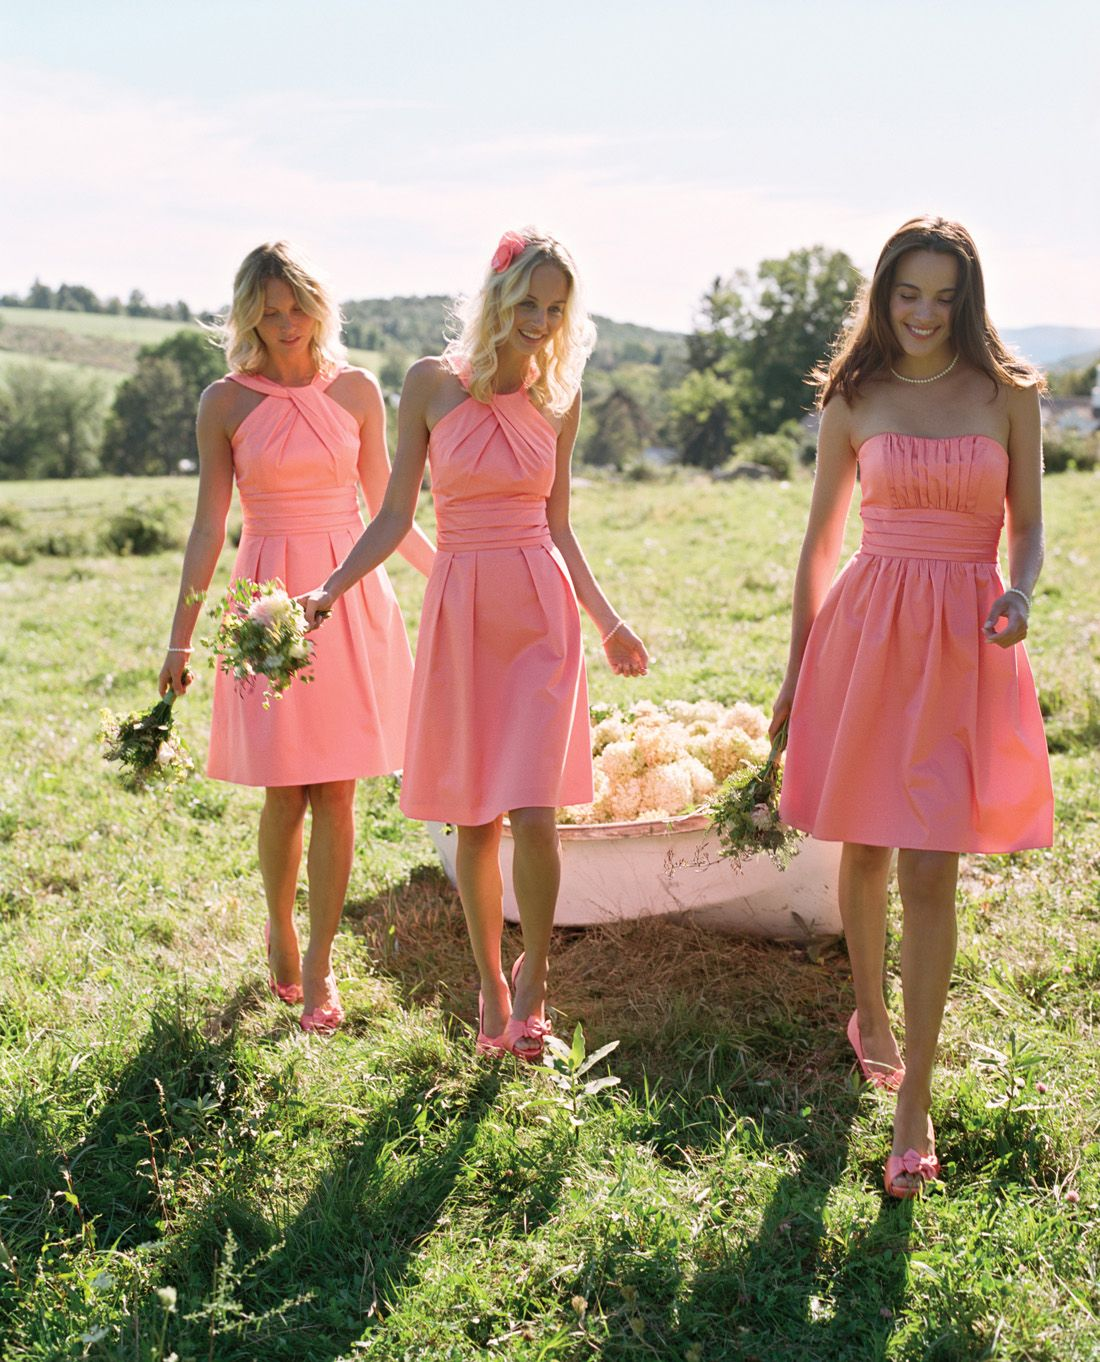 Coral reef is one of our favorite bridesmaid hues check out these coral reef is one of our favorite bridesmaid hues check out these styles along with other featured bridesmaid dresses in this color ombrellifo Choice Image